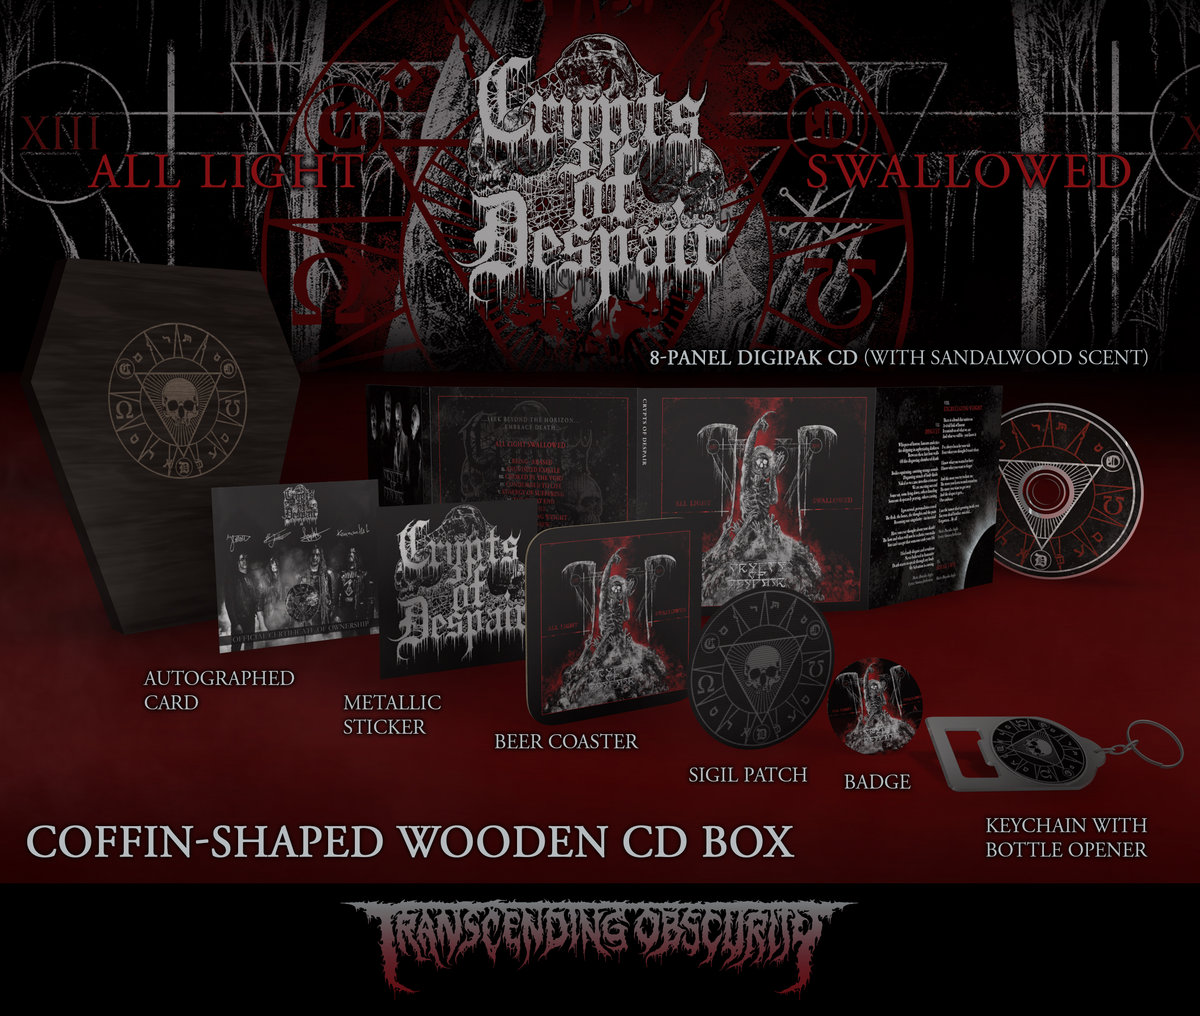 CRYPTS OF DESPAIR - All Light Swallowed Black Coffin-Shaped Wooden CD Box Set with Engraving (Ltd. to 75 nos.)